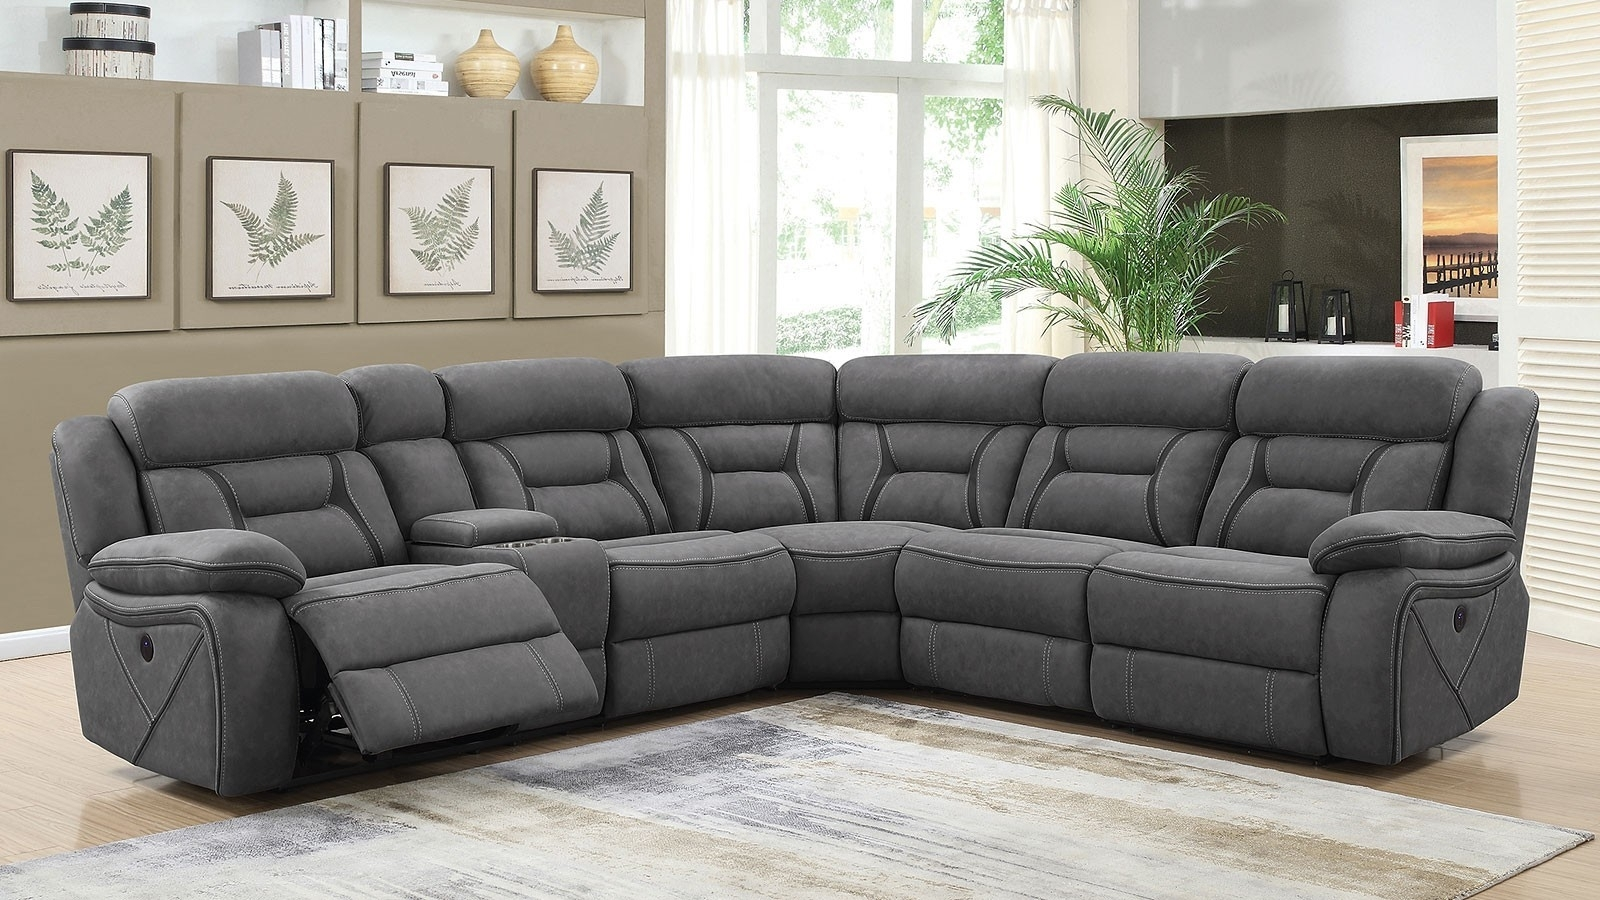 Grey Reclining Sectional - Implantologiabogota.co intended for Calder Grey 6 Piece Manual Reclining Sectionals (Image 16 of 30)